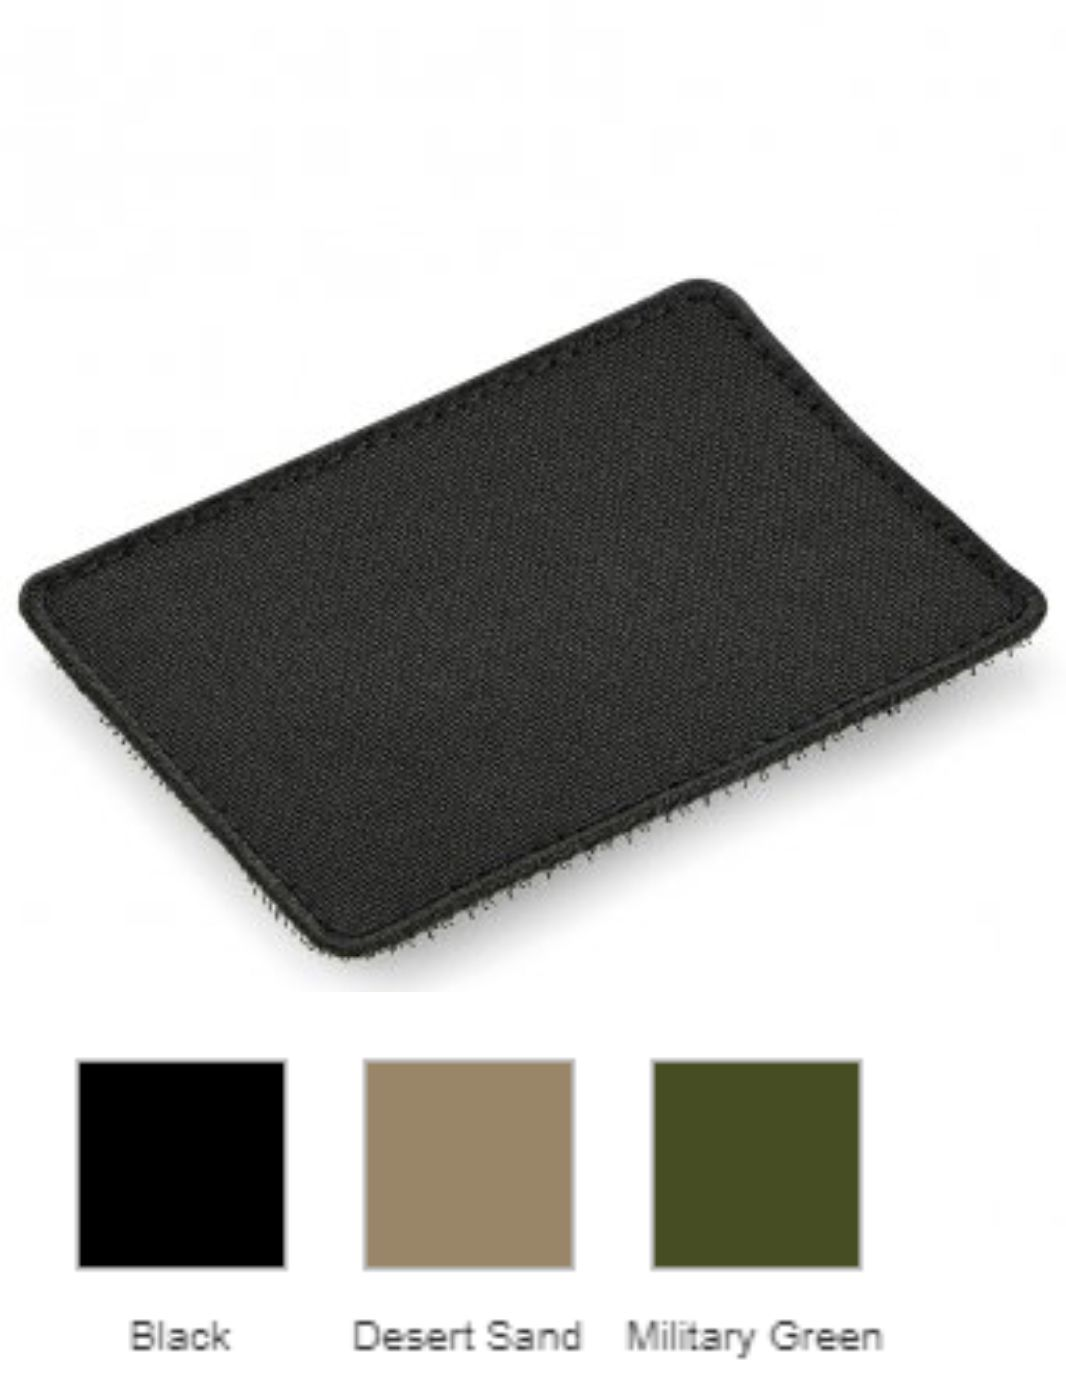 BG840 Bagbase MOLLE Utility Patch